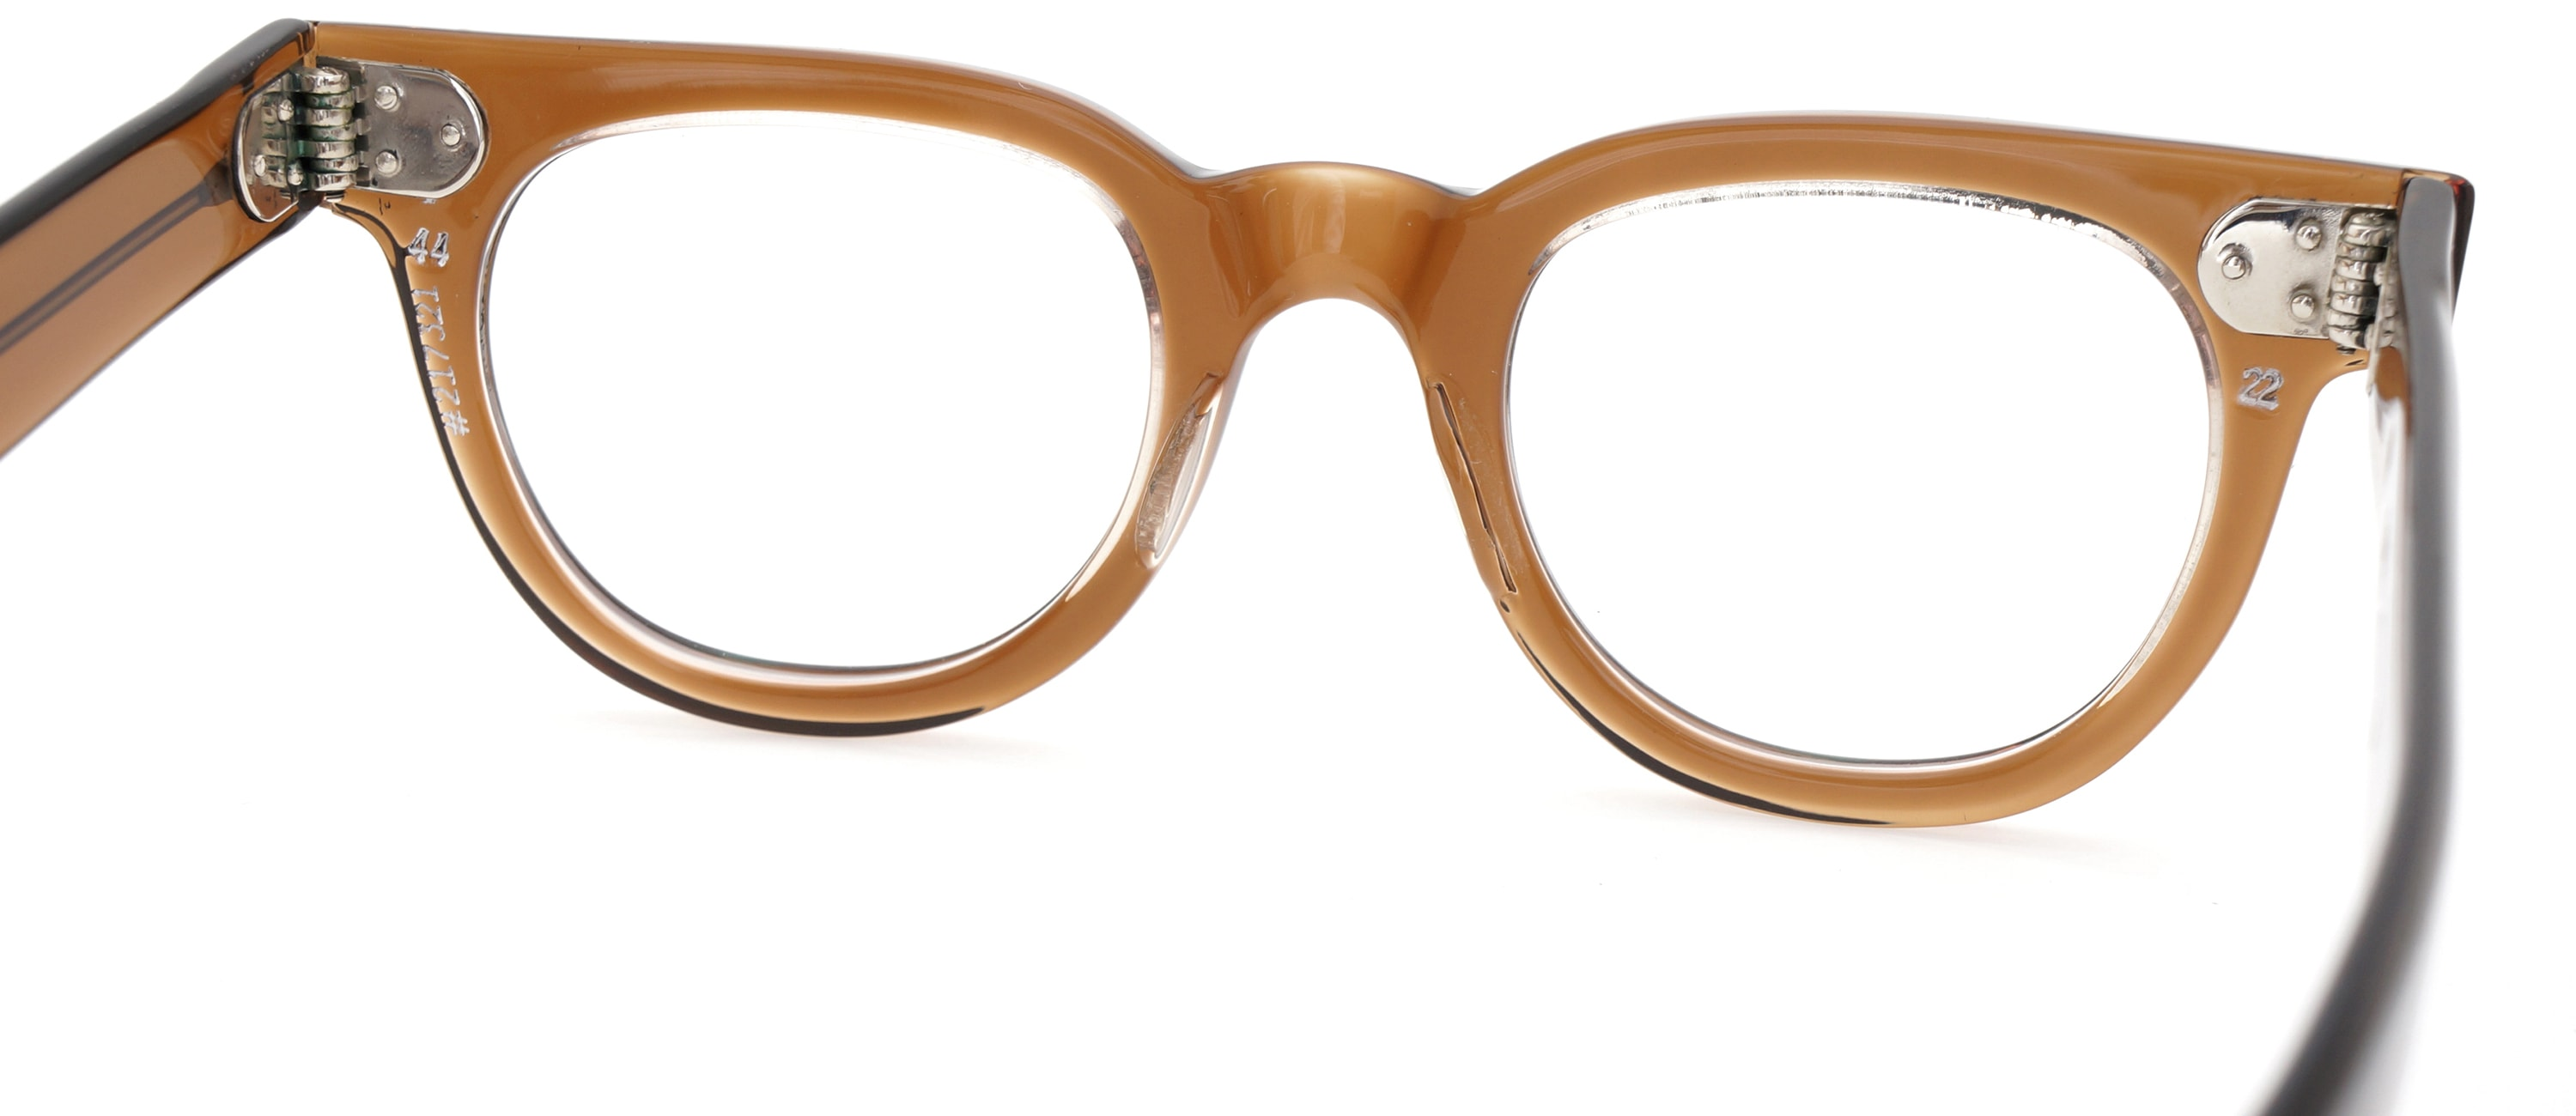 The Spectacle メガネ 1950s-70s TART OPTICAL FDR (FRAME USA) BROWN 44-22 イメージ9